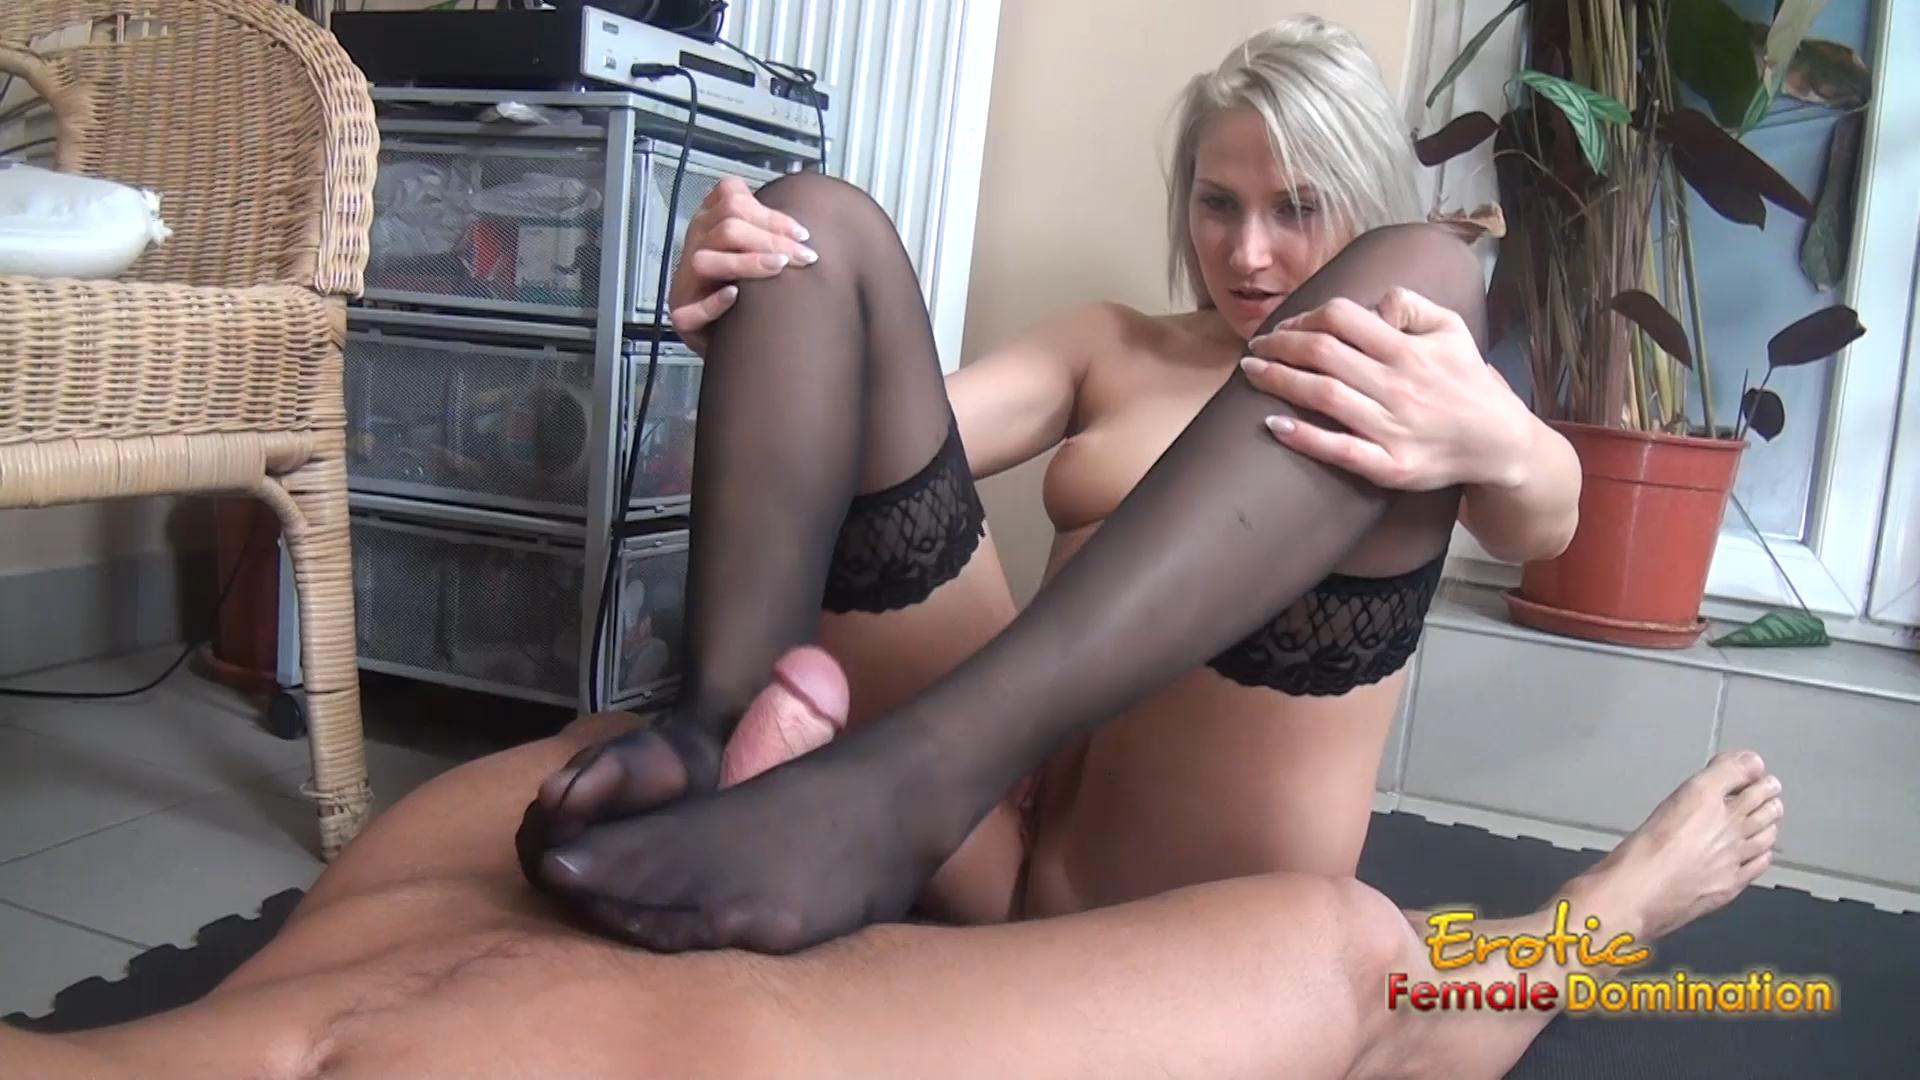 Viktoria Diamond teases her slave with some hot erotic foot domination – Erotic Female Domination_cover